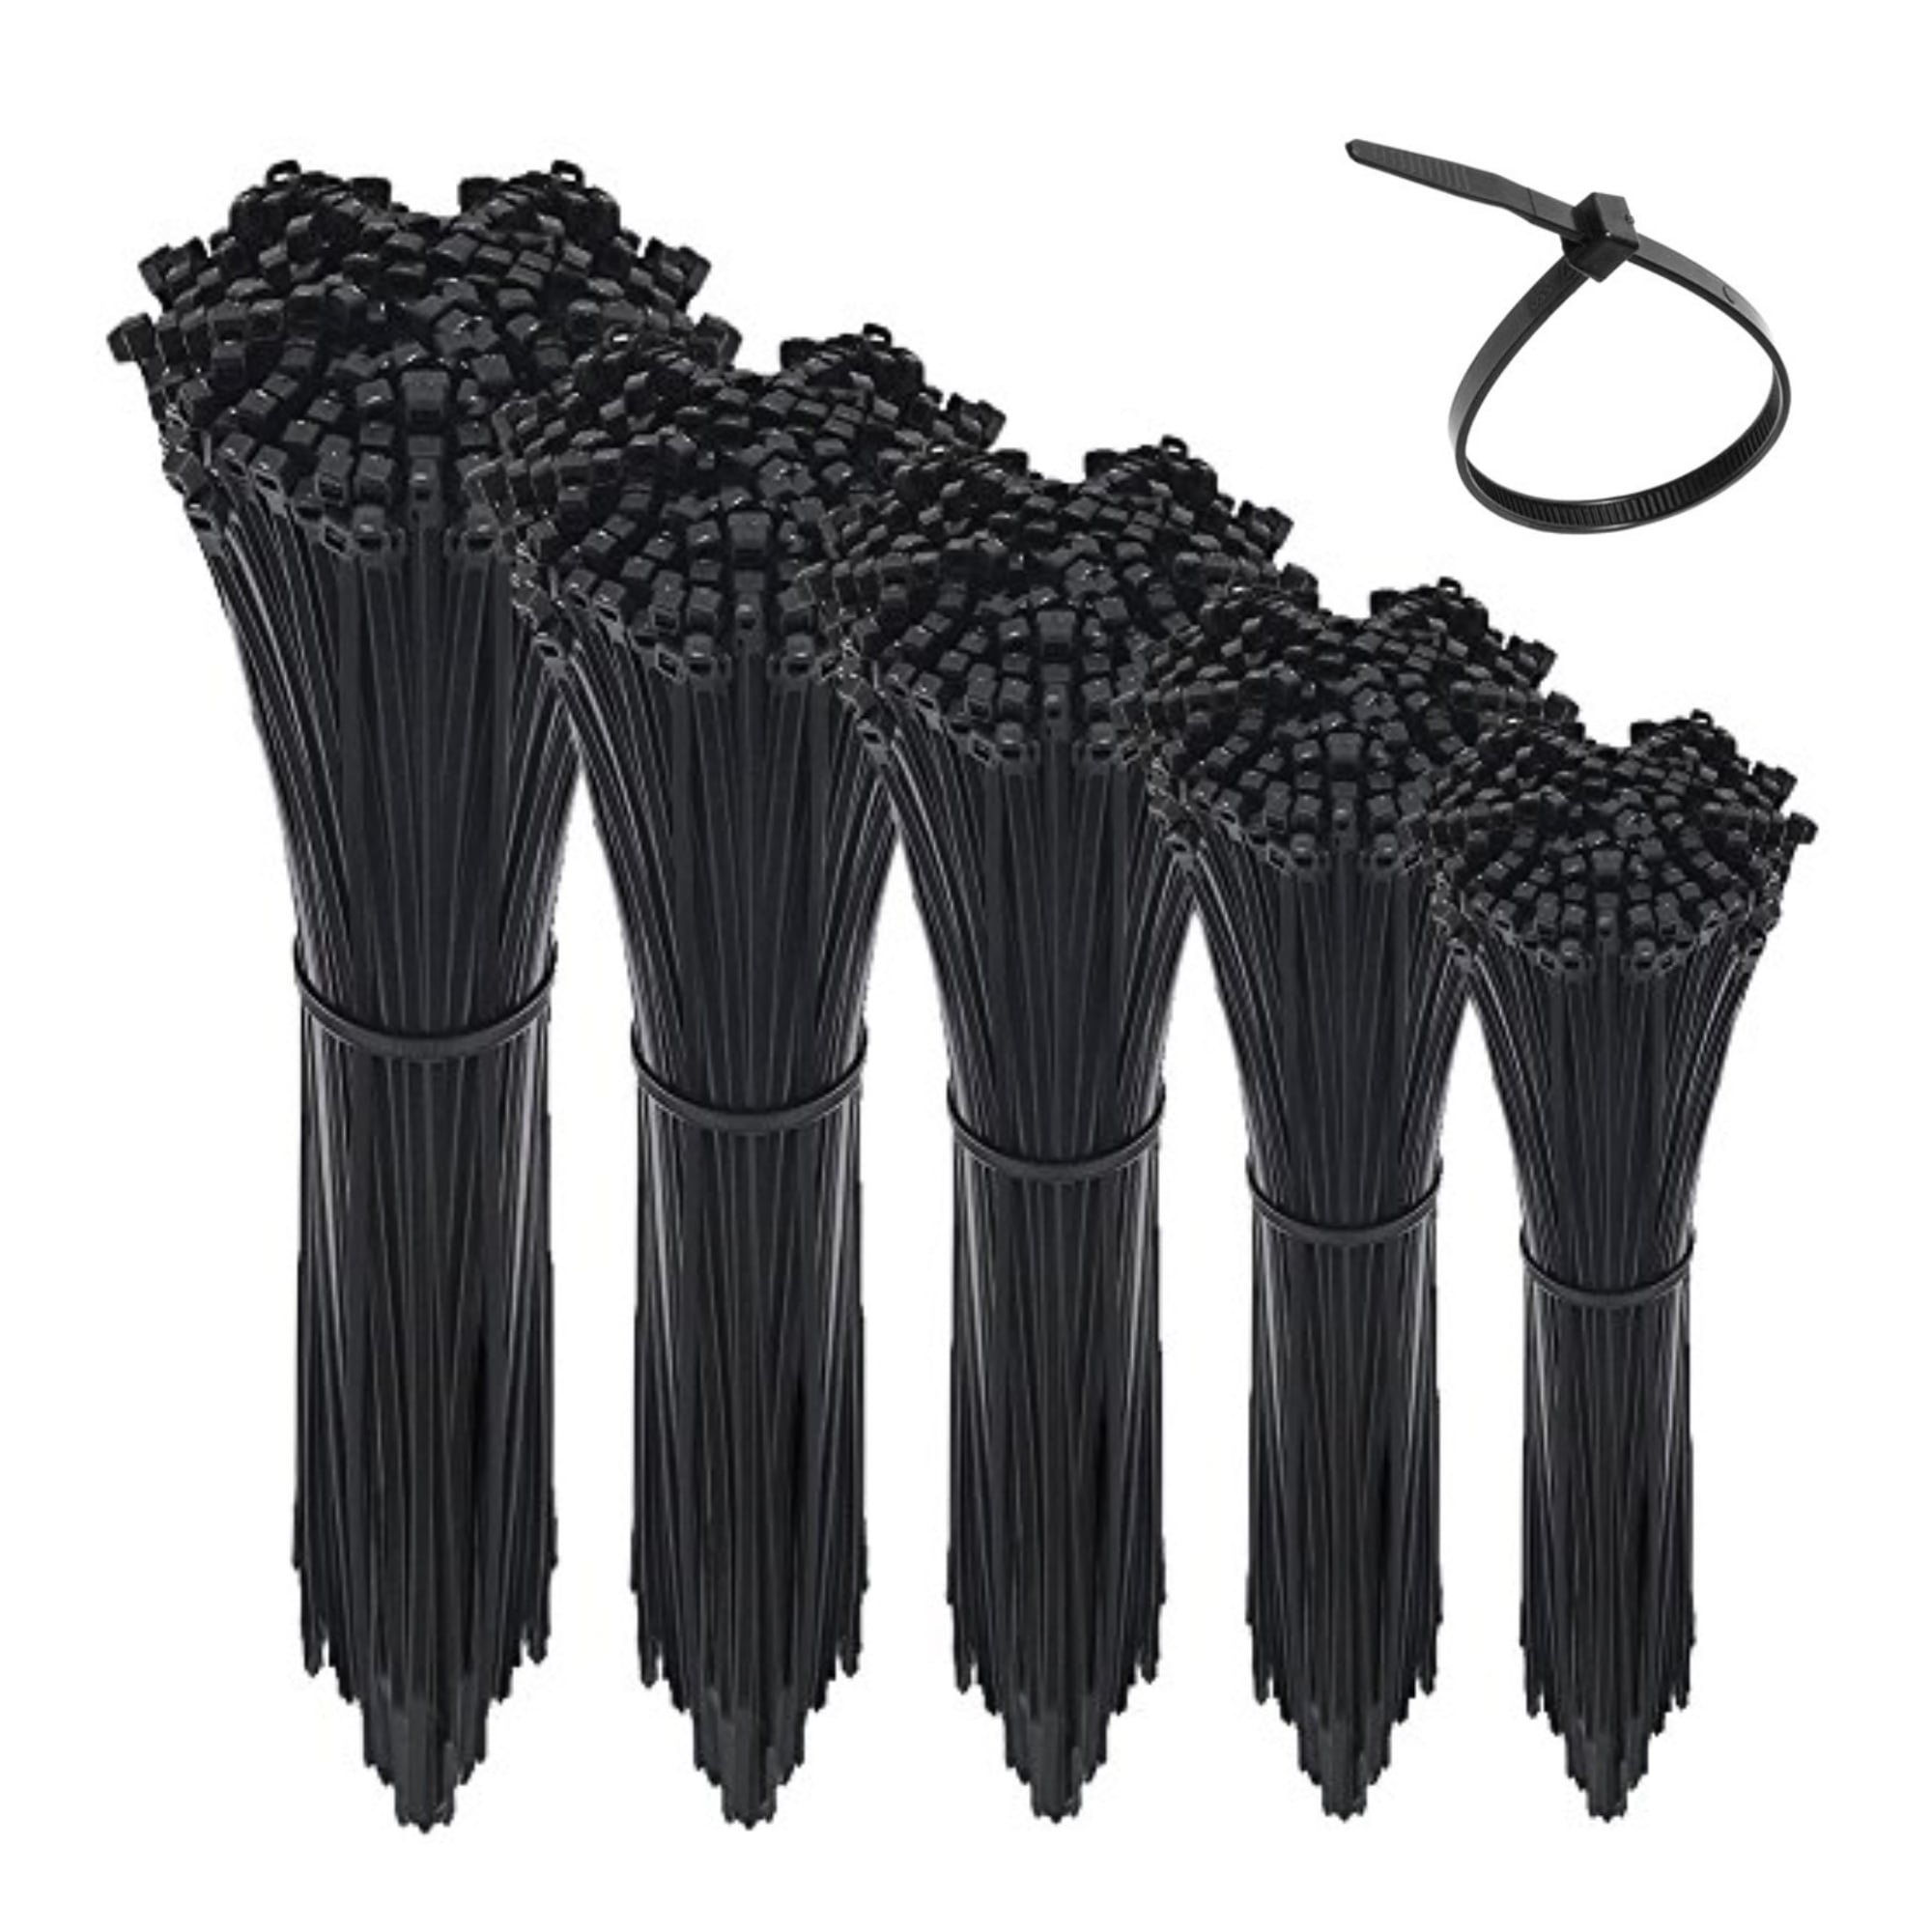 200pcs Cable Zip Ties 4.8mm x 200mm Black Nylon UV Stabilised